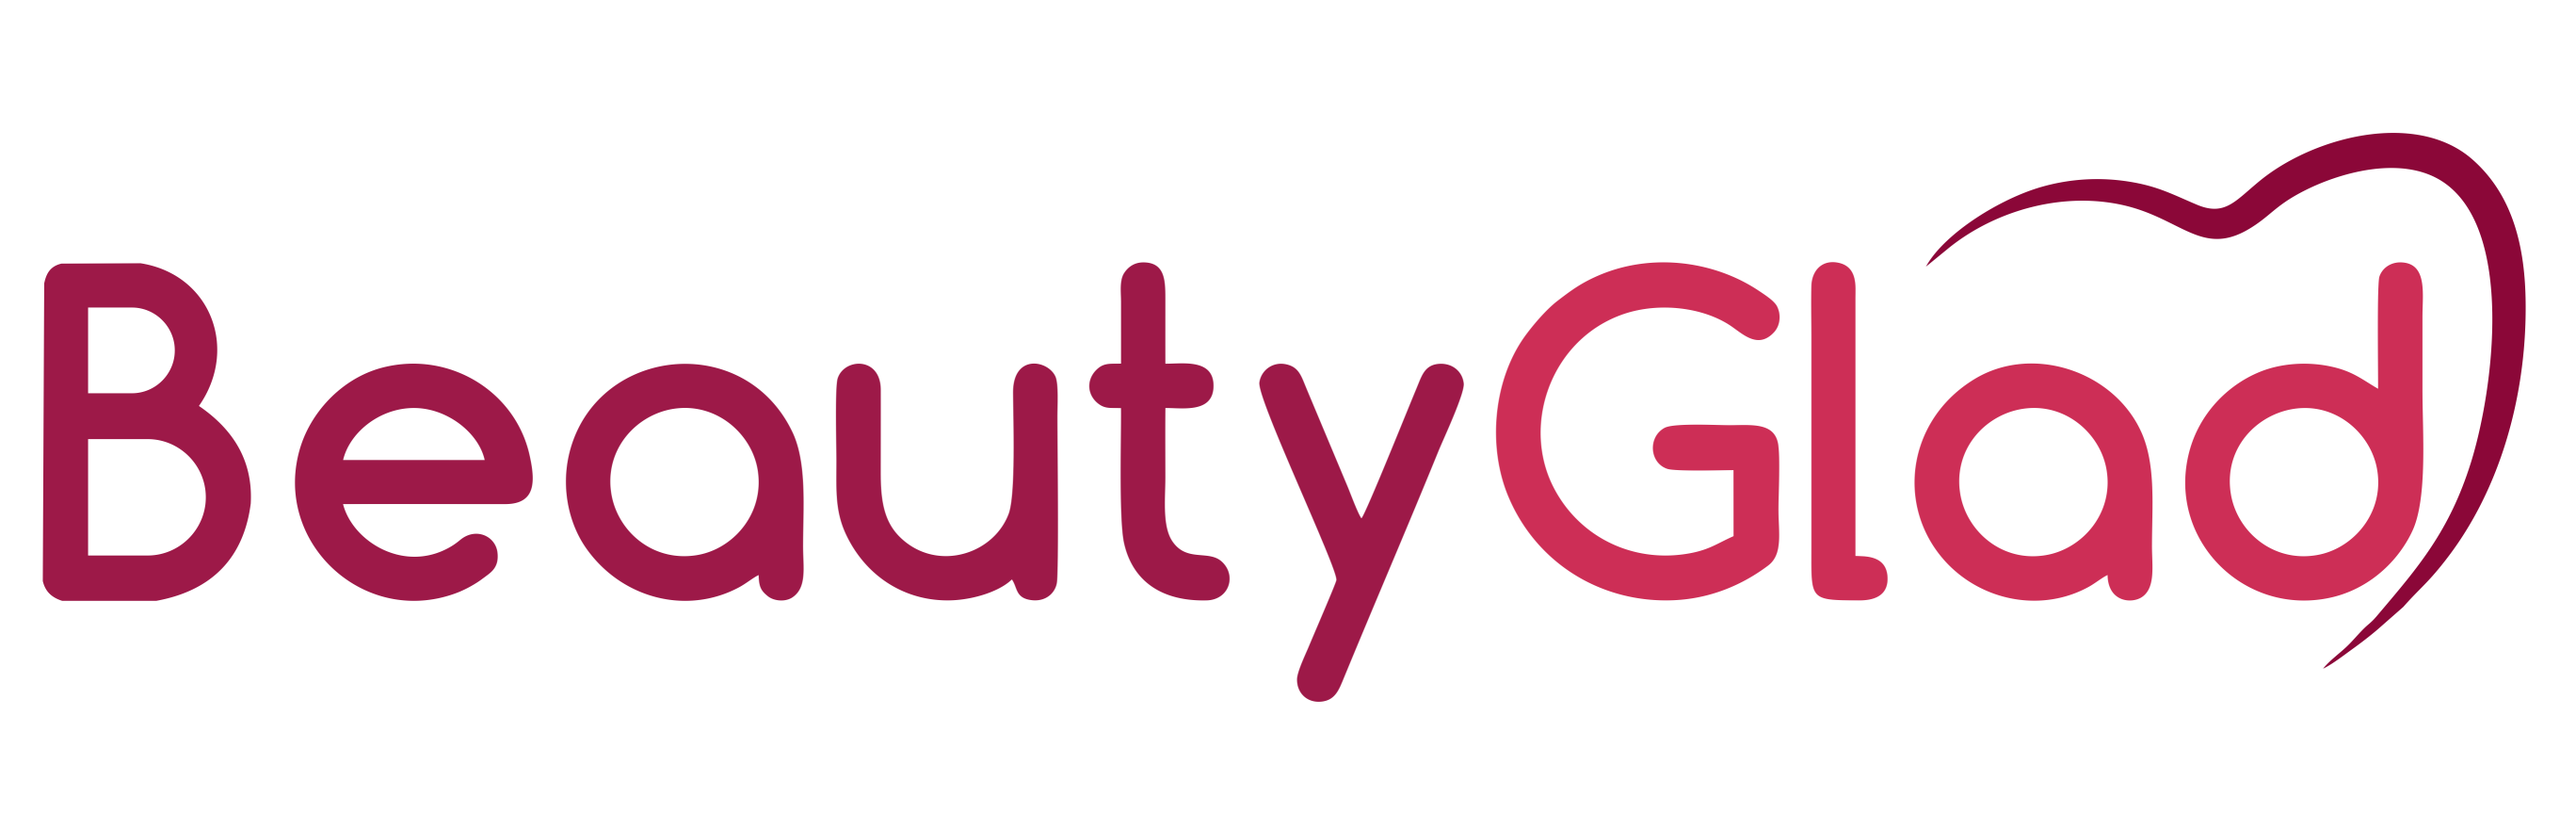 Beautyglad.com Image